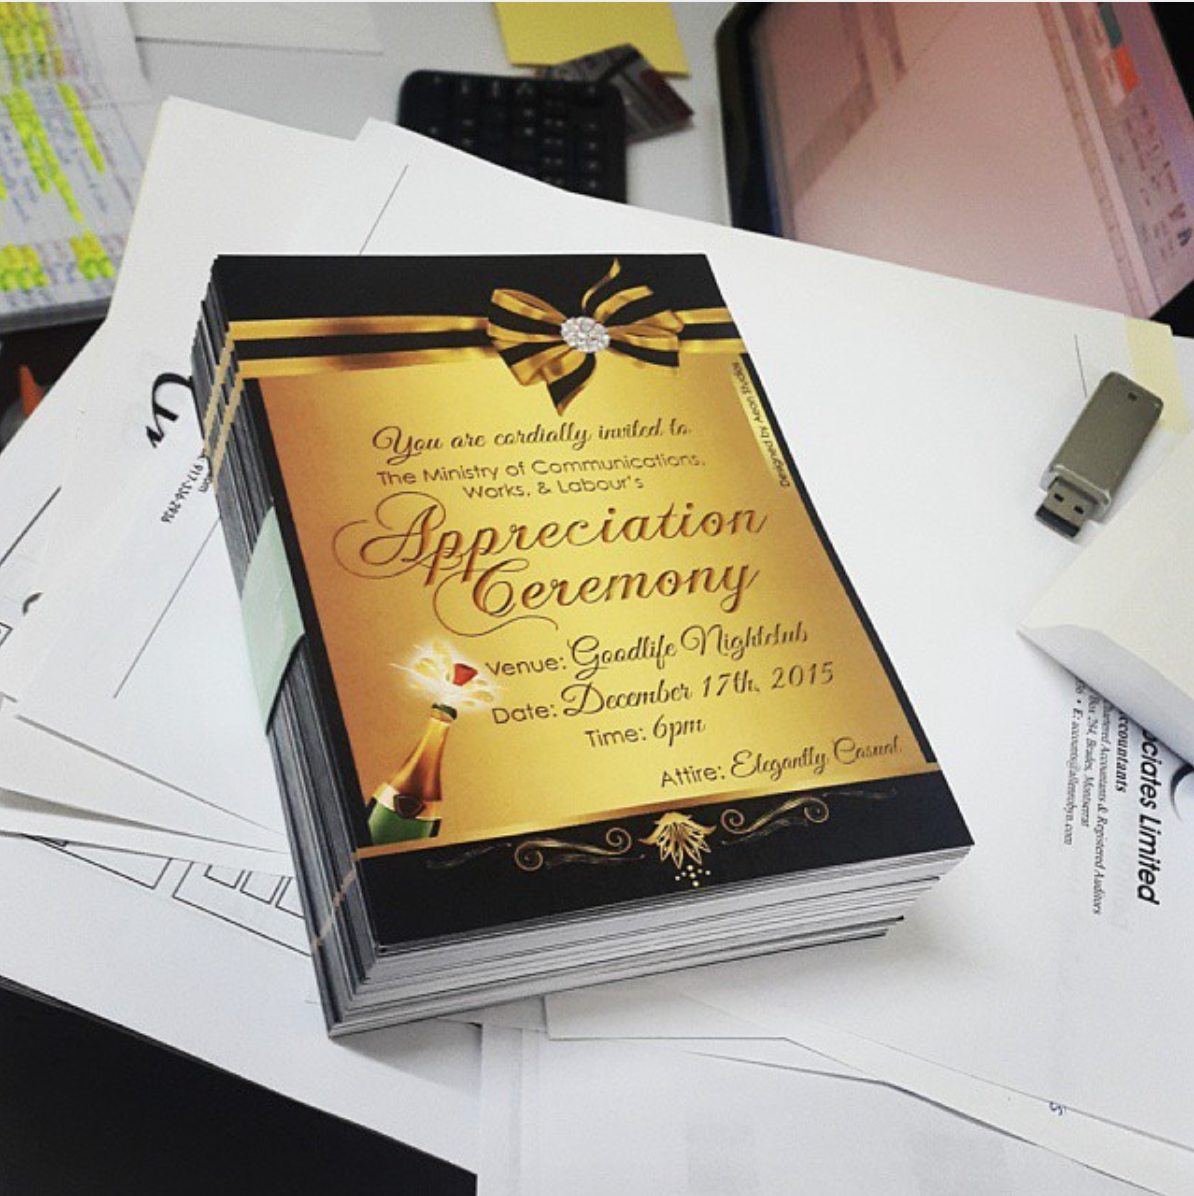 MCWL Awards Ceremony Invitation 2015